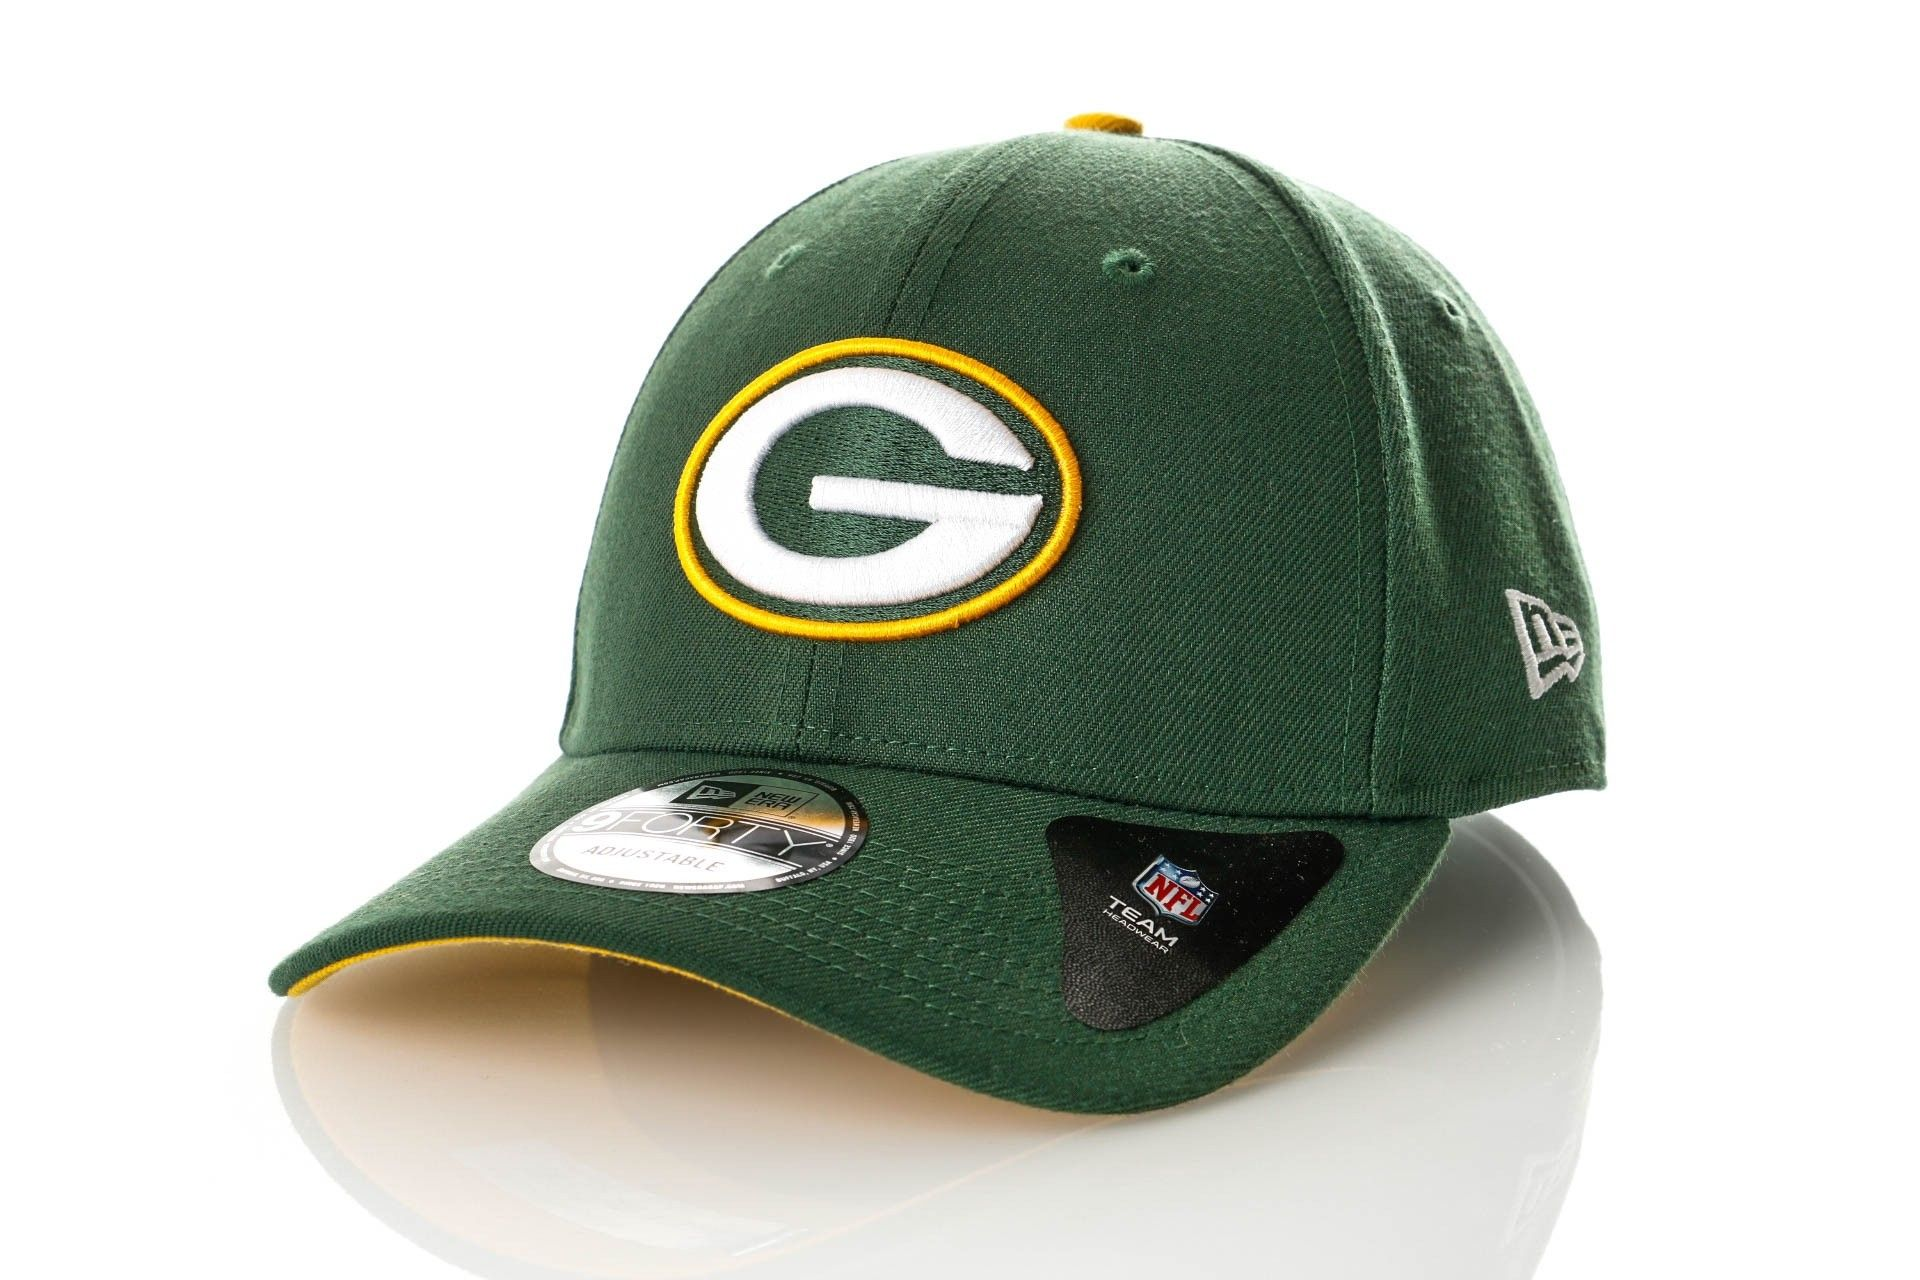 Afbeelding van New Era Dad Cap Green Bay Packers NFL THE LEAGUE GREEN BAY PACKERS 10517884